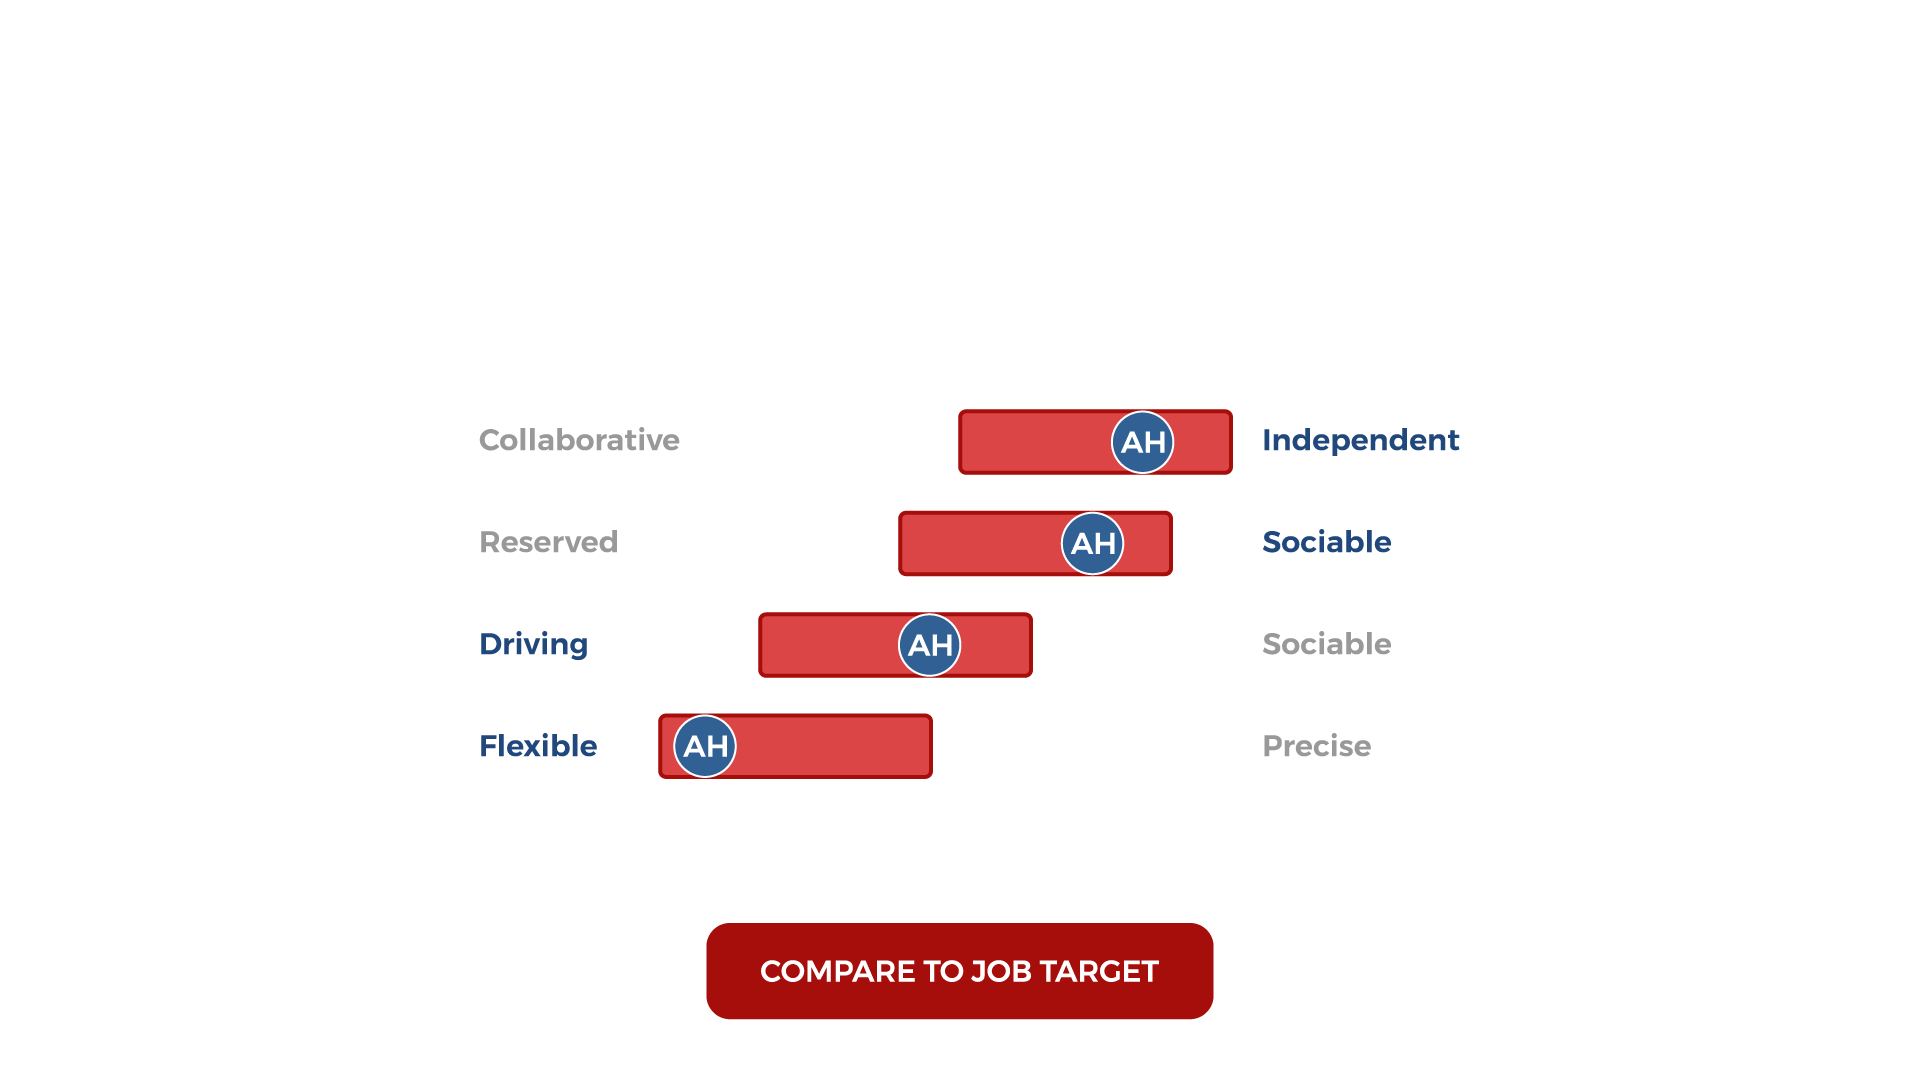 compare to job target